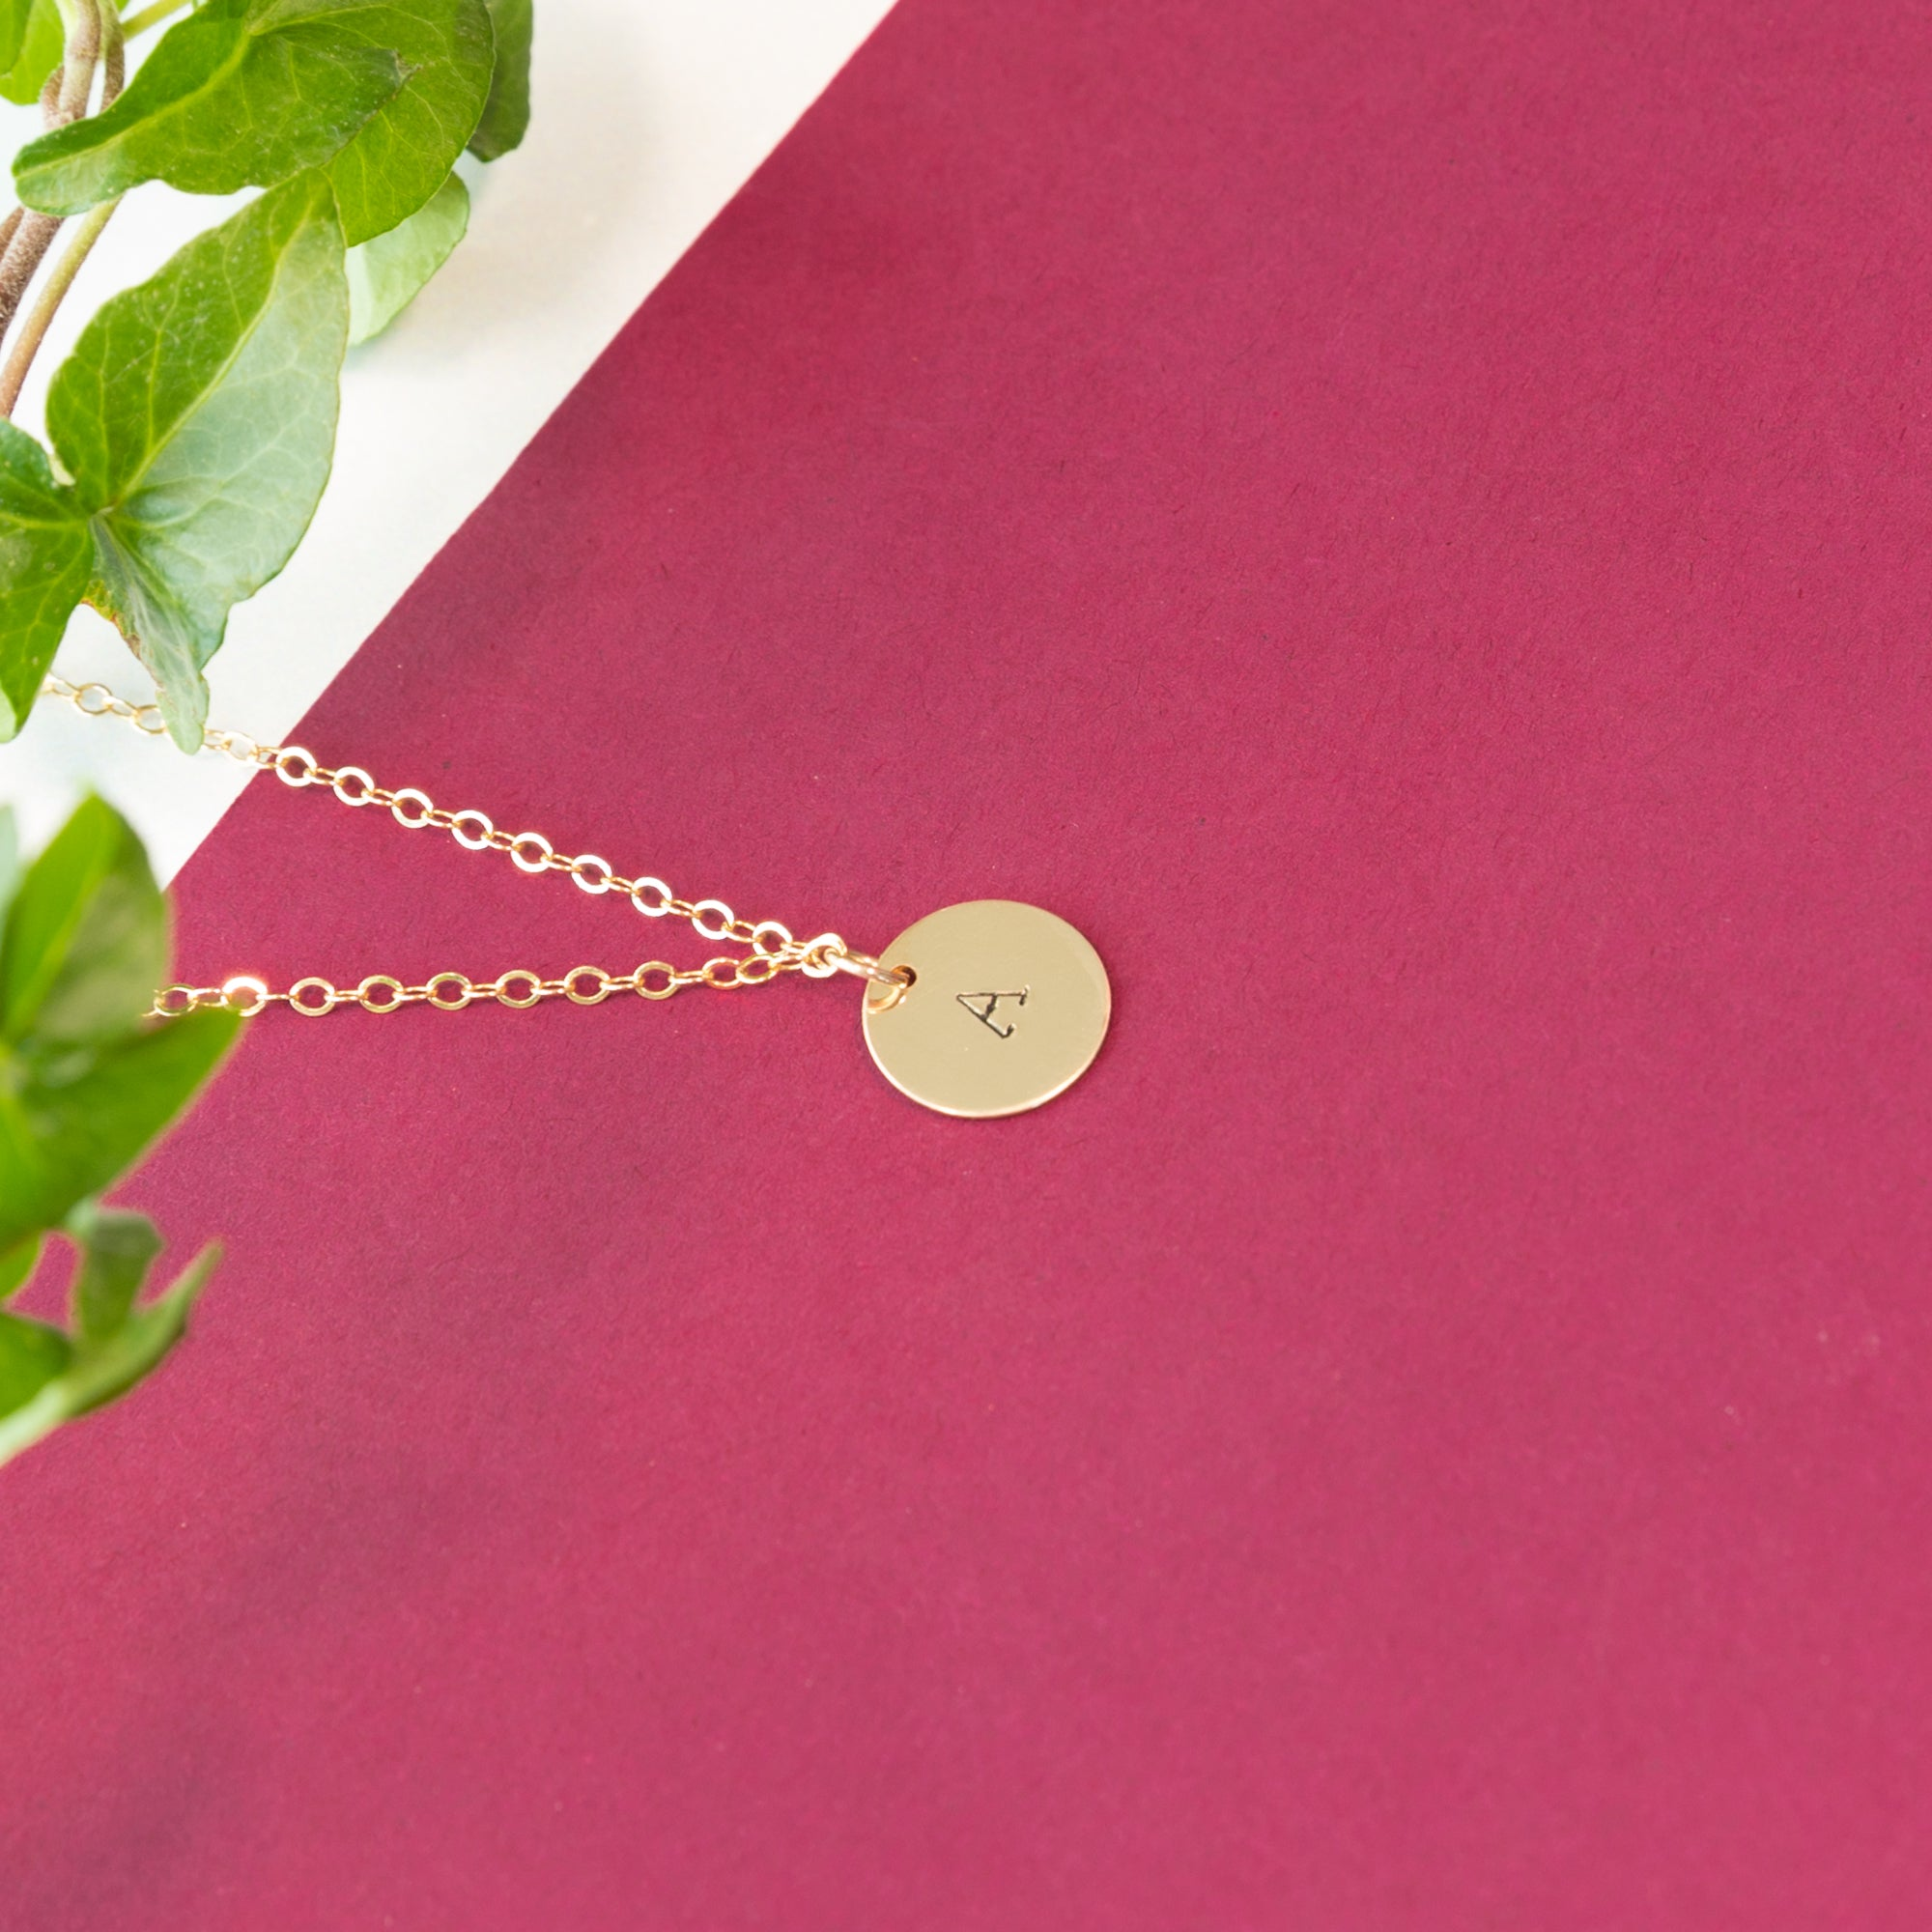 Hand Stamped Initial Necklace | Liz.Beth Jewelry Co.